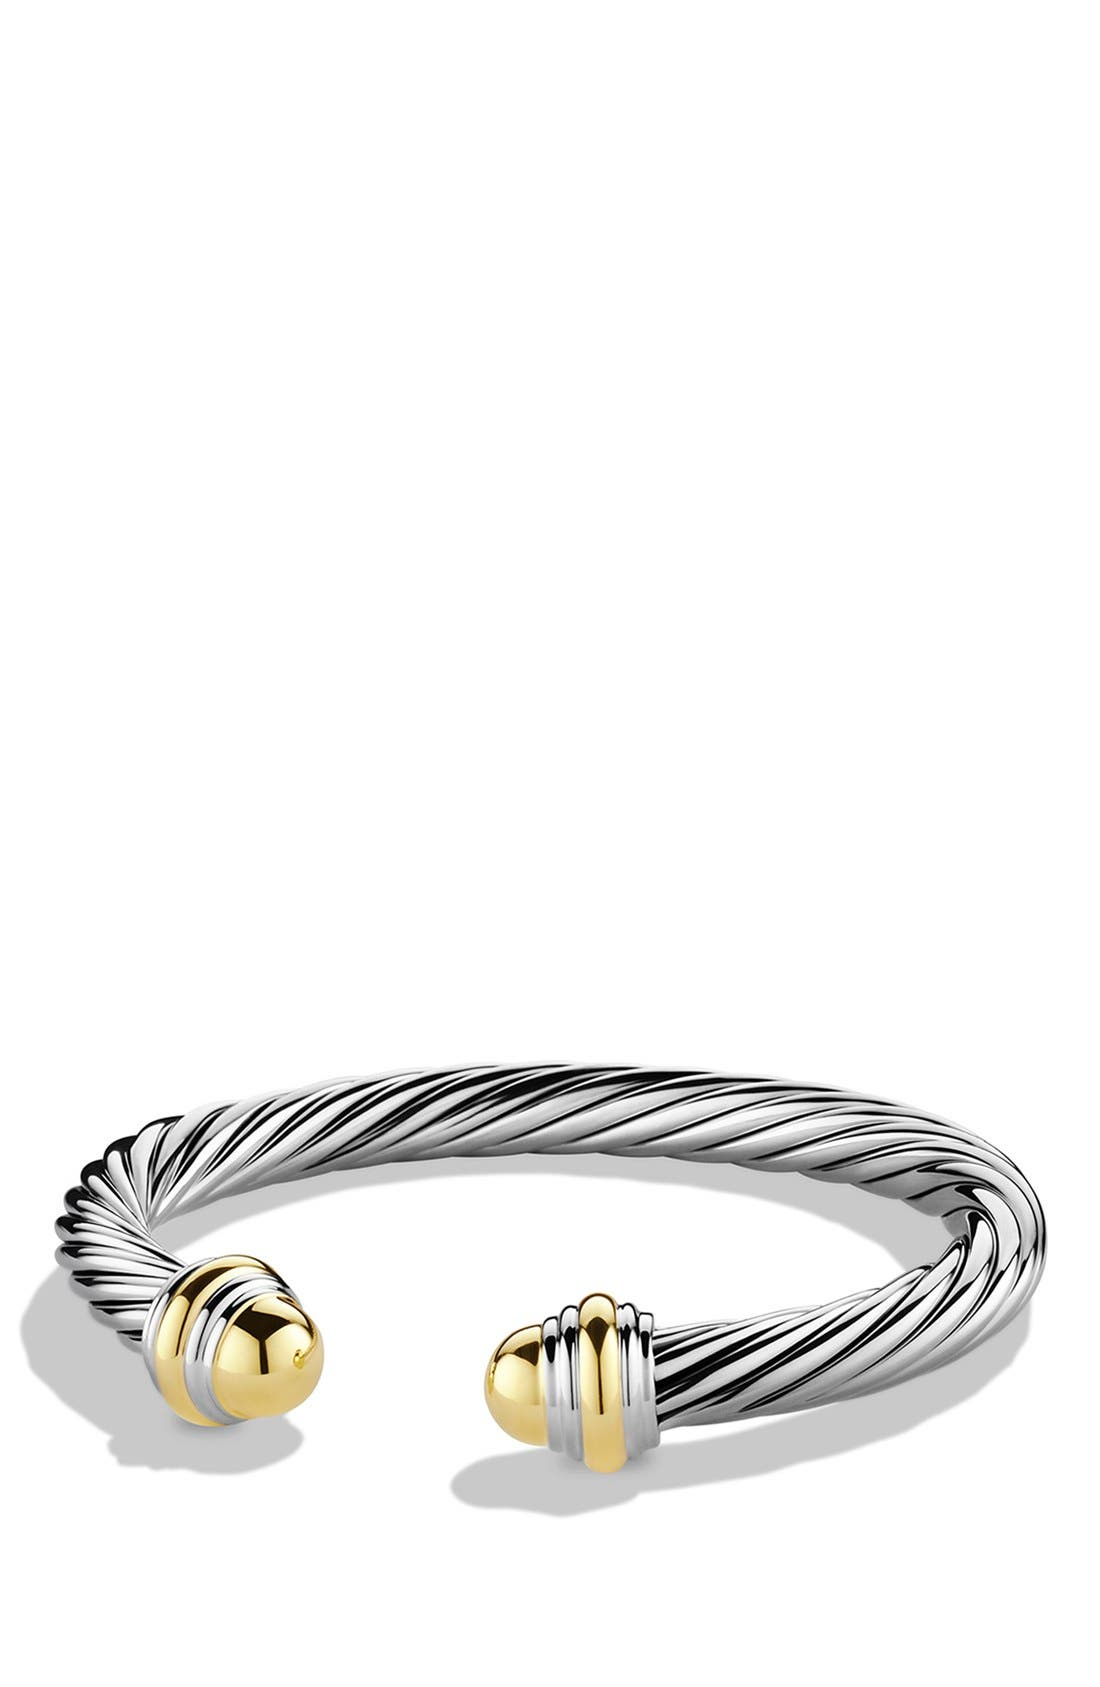 Cable Classics Bracelet with 14K Gold, 7mm,                         Main,                         color, GOLD DOME